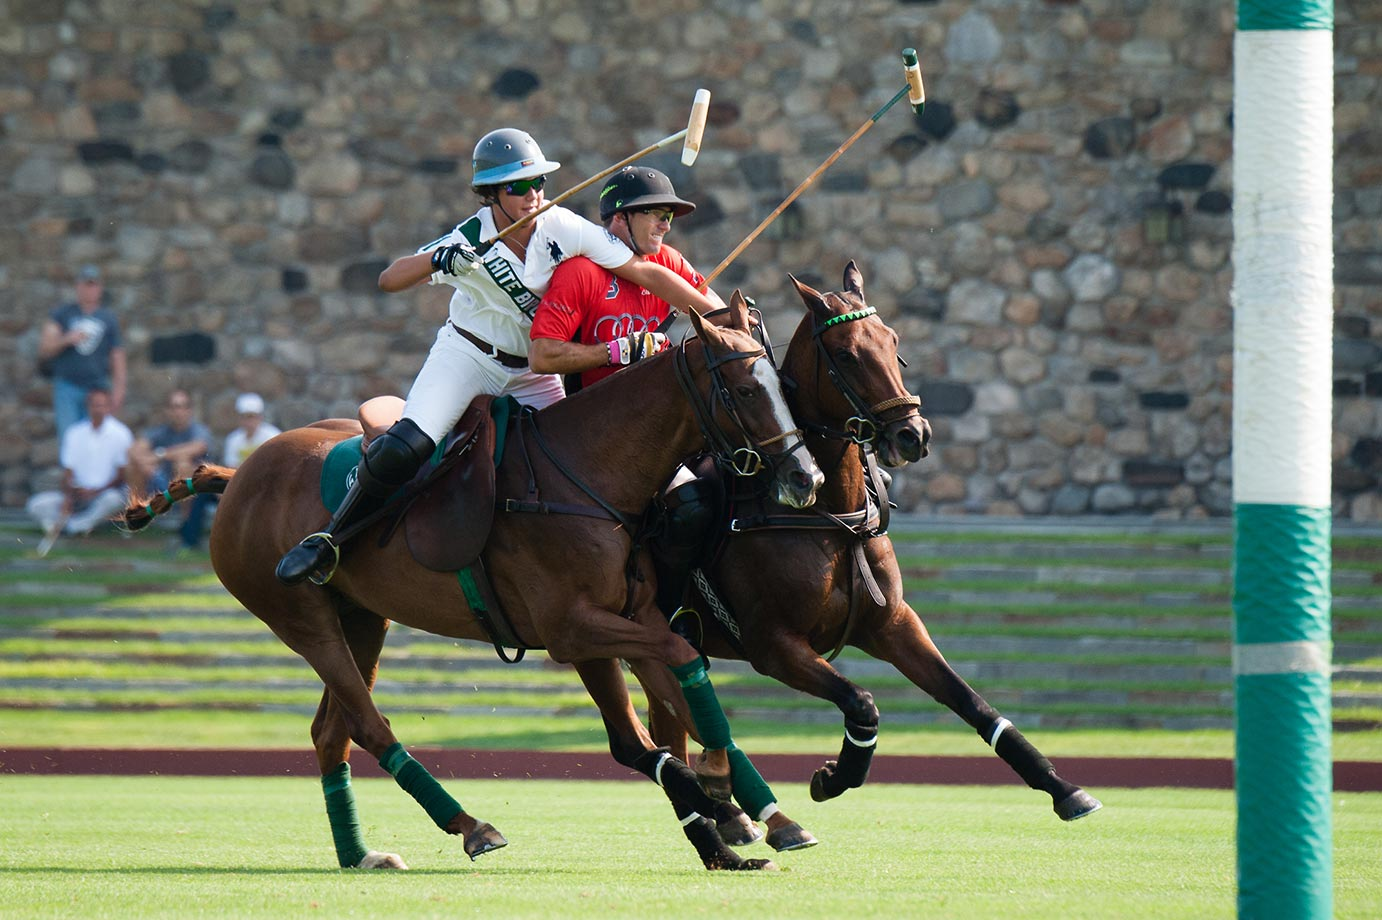 Nic Roldan, playing for the Audi Polo Team, and 14-year-old Santino Magrini battle it out.